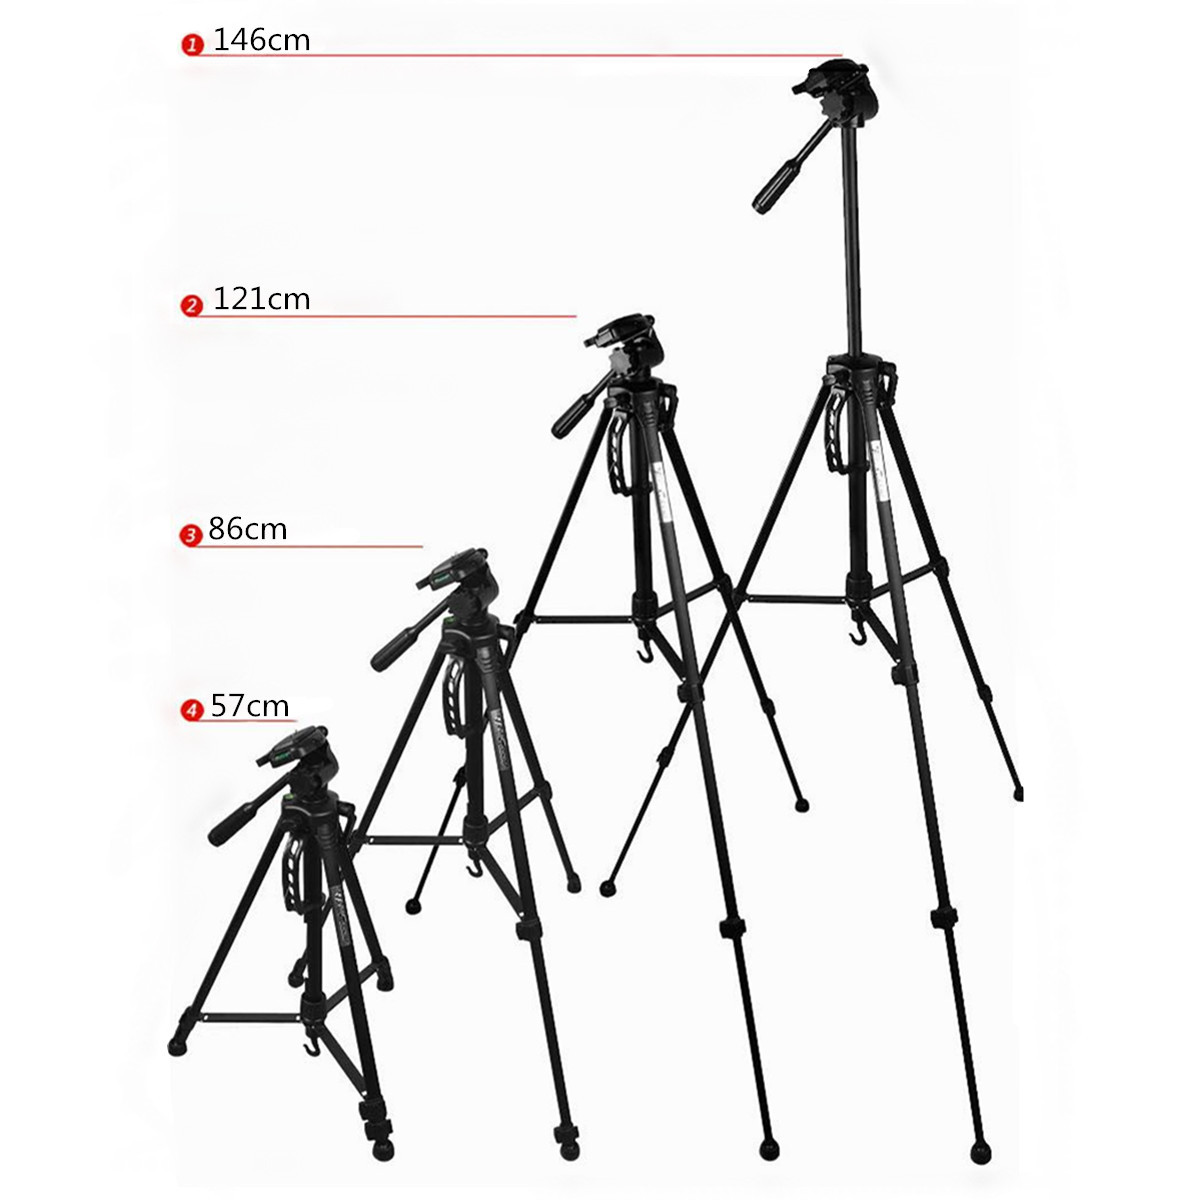 Weifeng Wt Tripod Stand With Carry Case For Digital